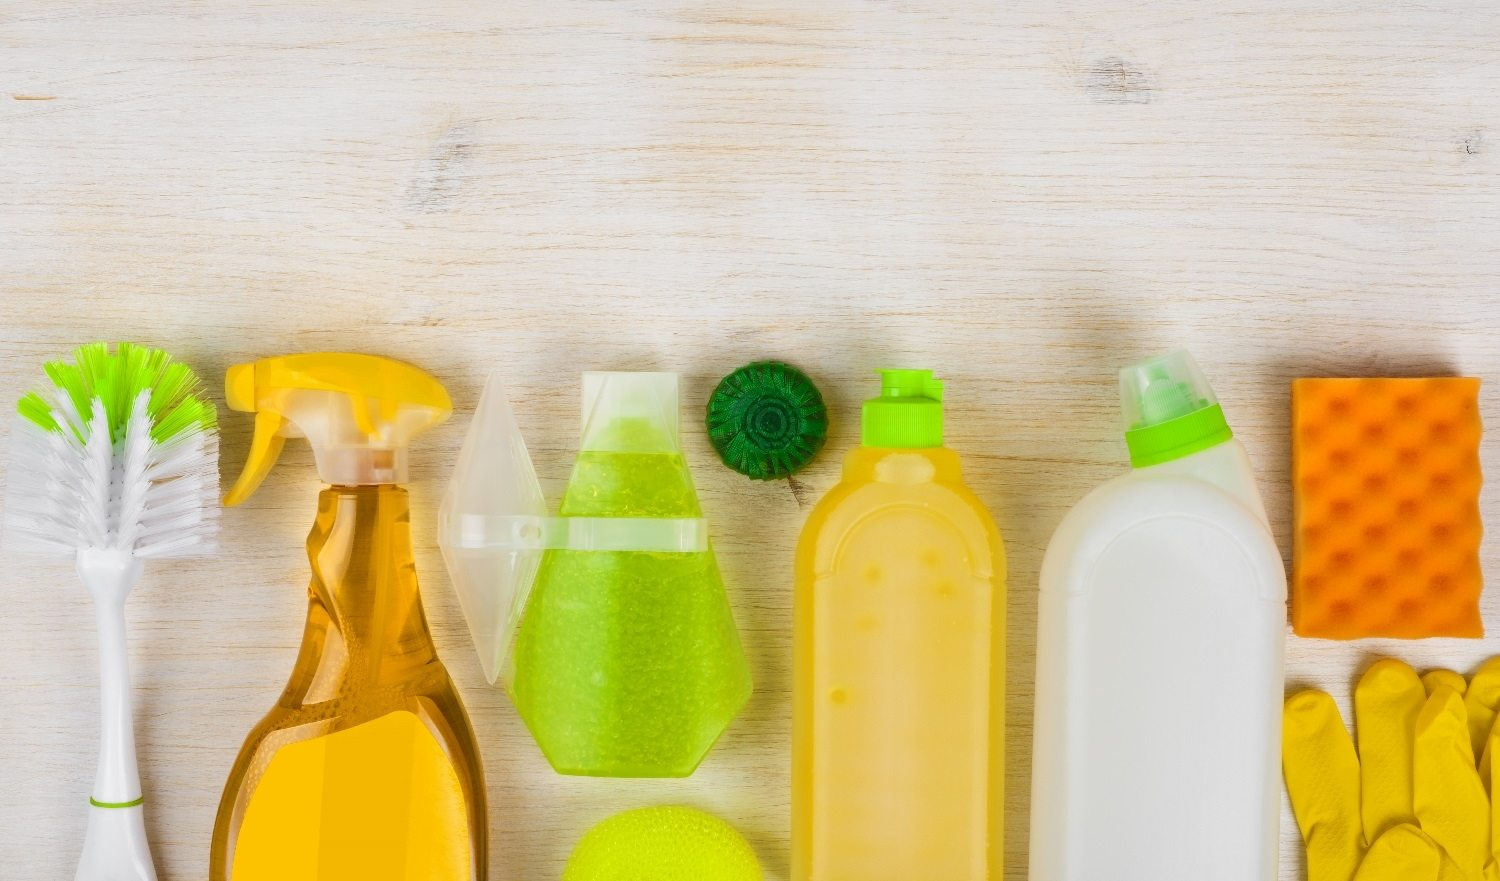 Cleaning products on wooden background with copy space at bottom